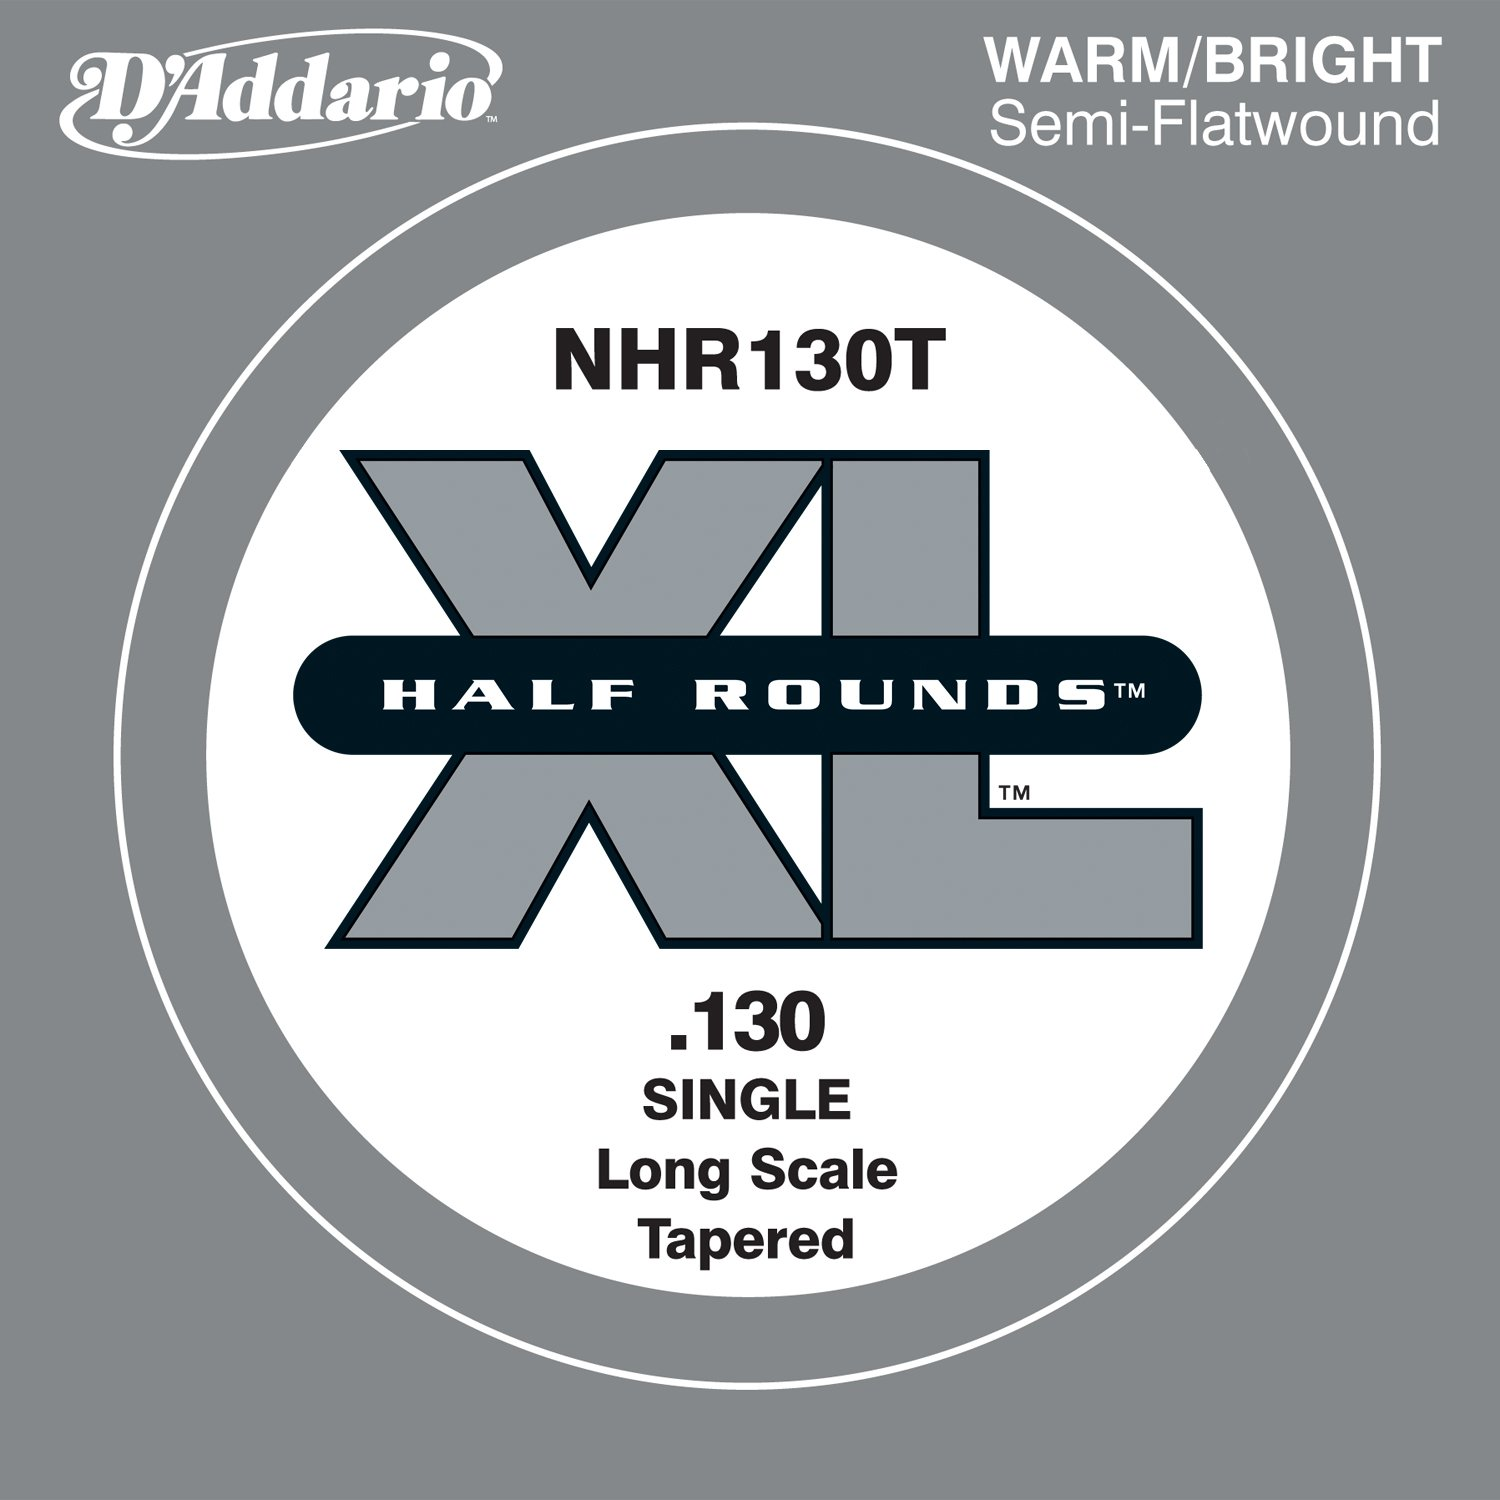 D'Addario NHR130T Half Round Bass Guitar Single String, Long Scale .130, Tapered D' Addario